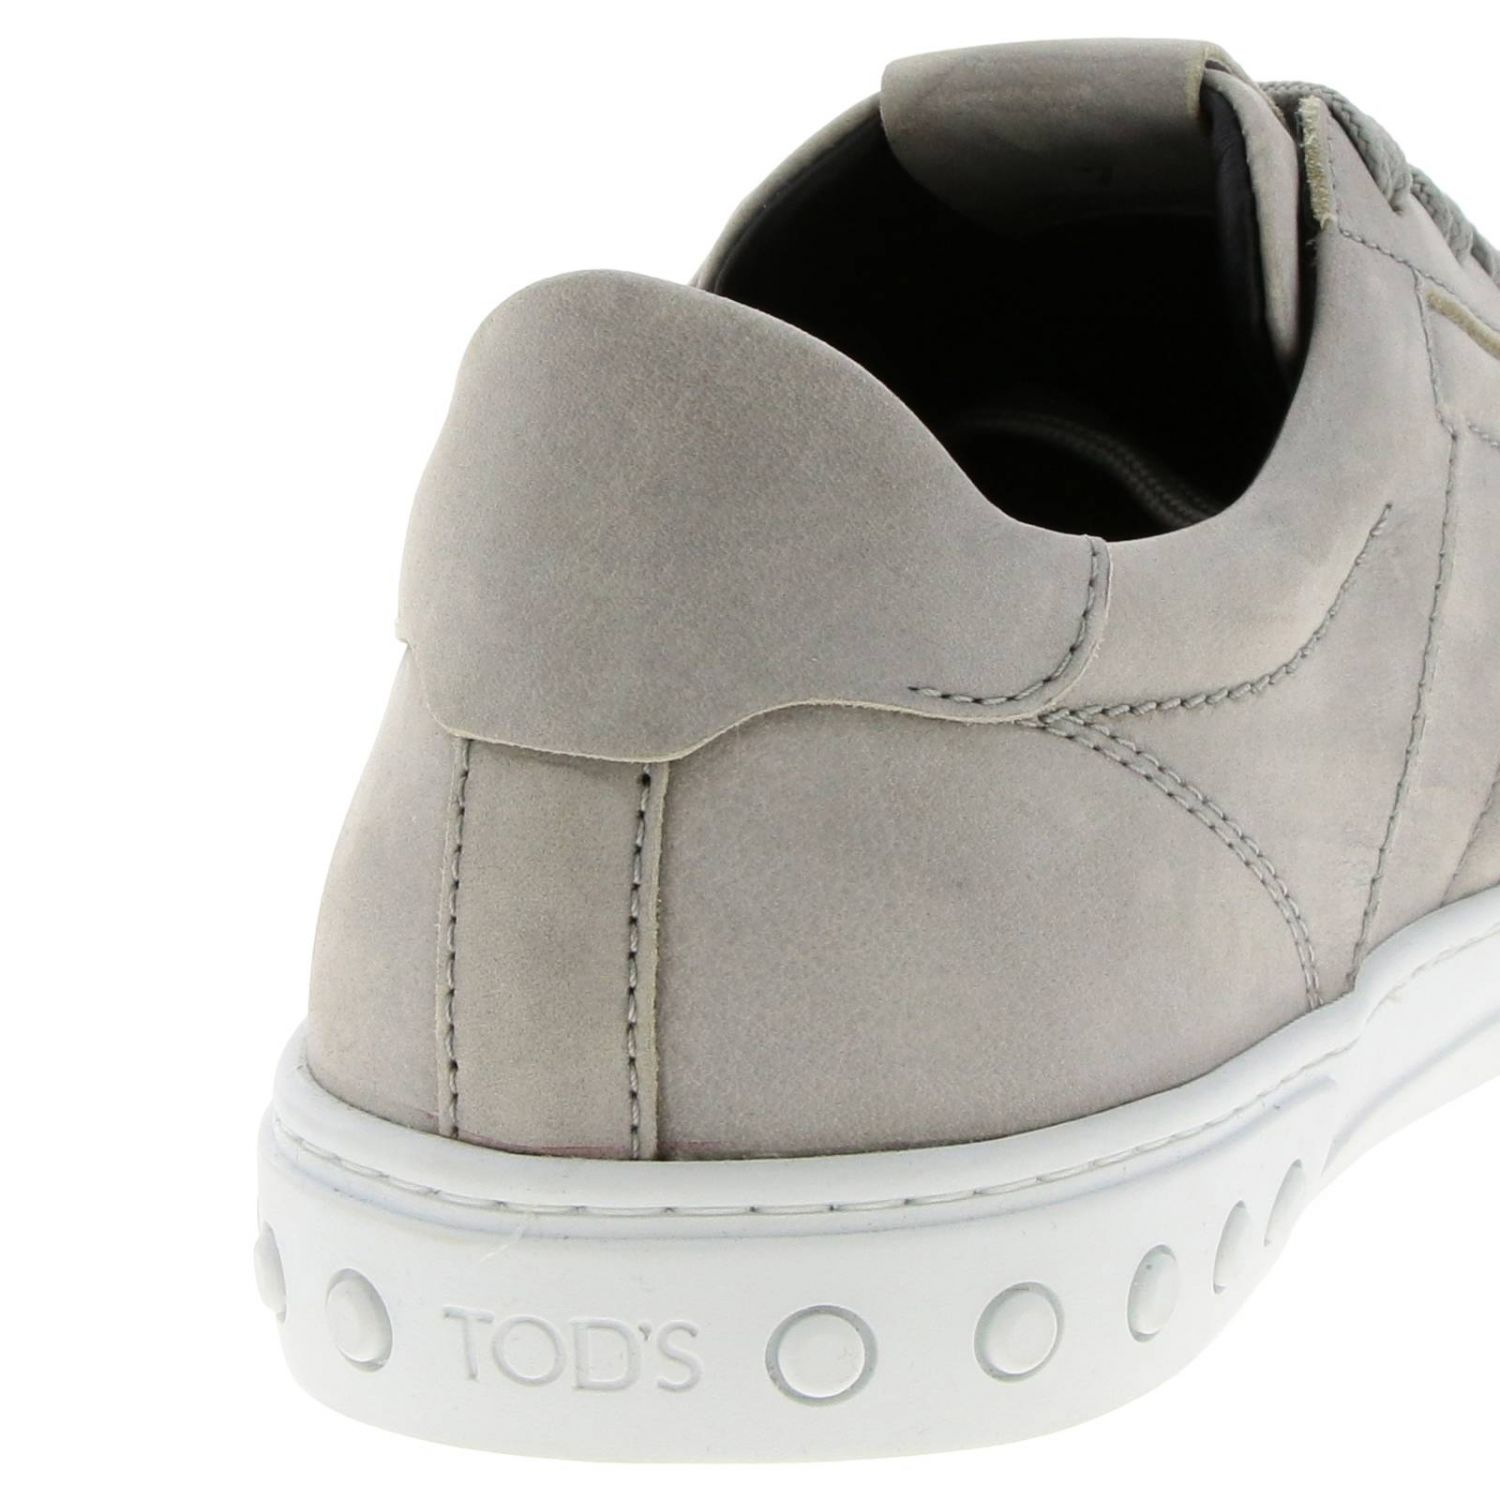 Shoes men Tod's ice 4